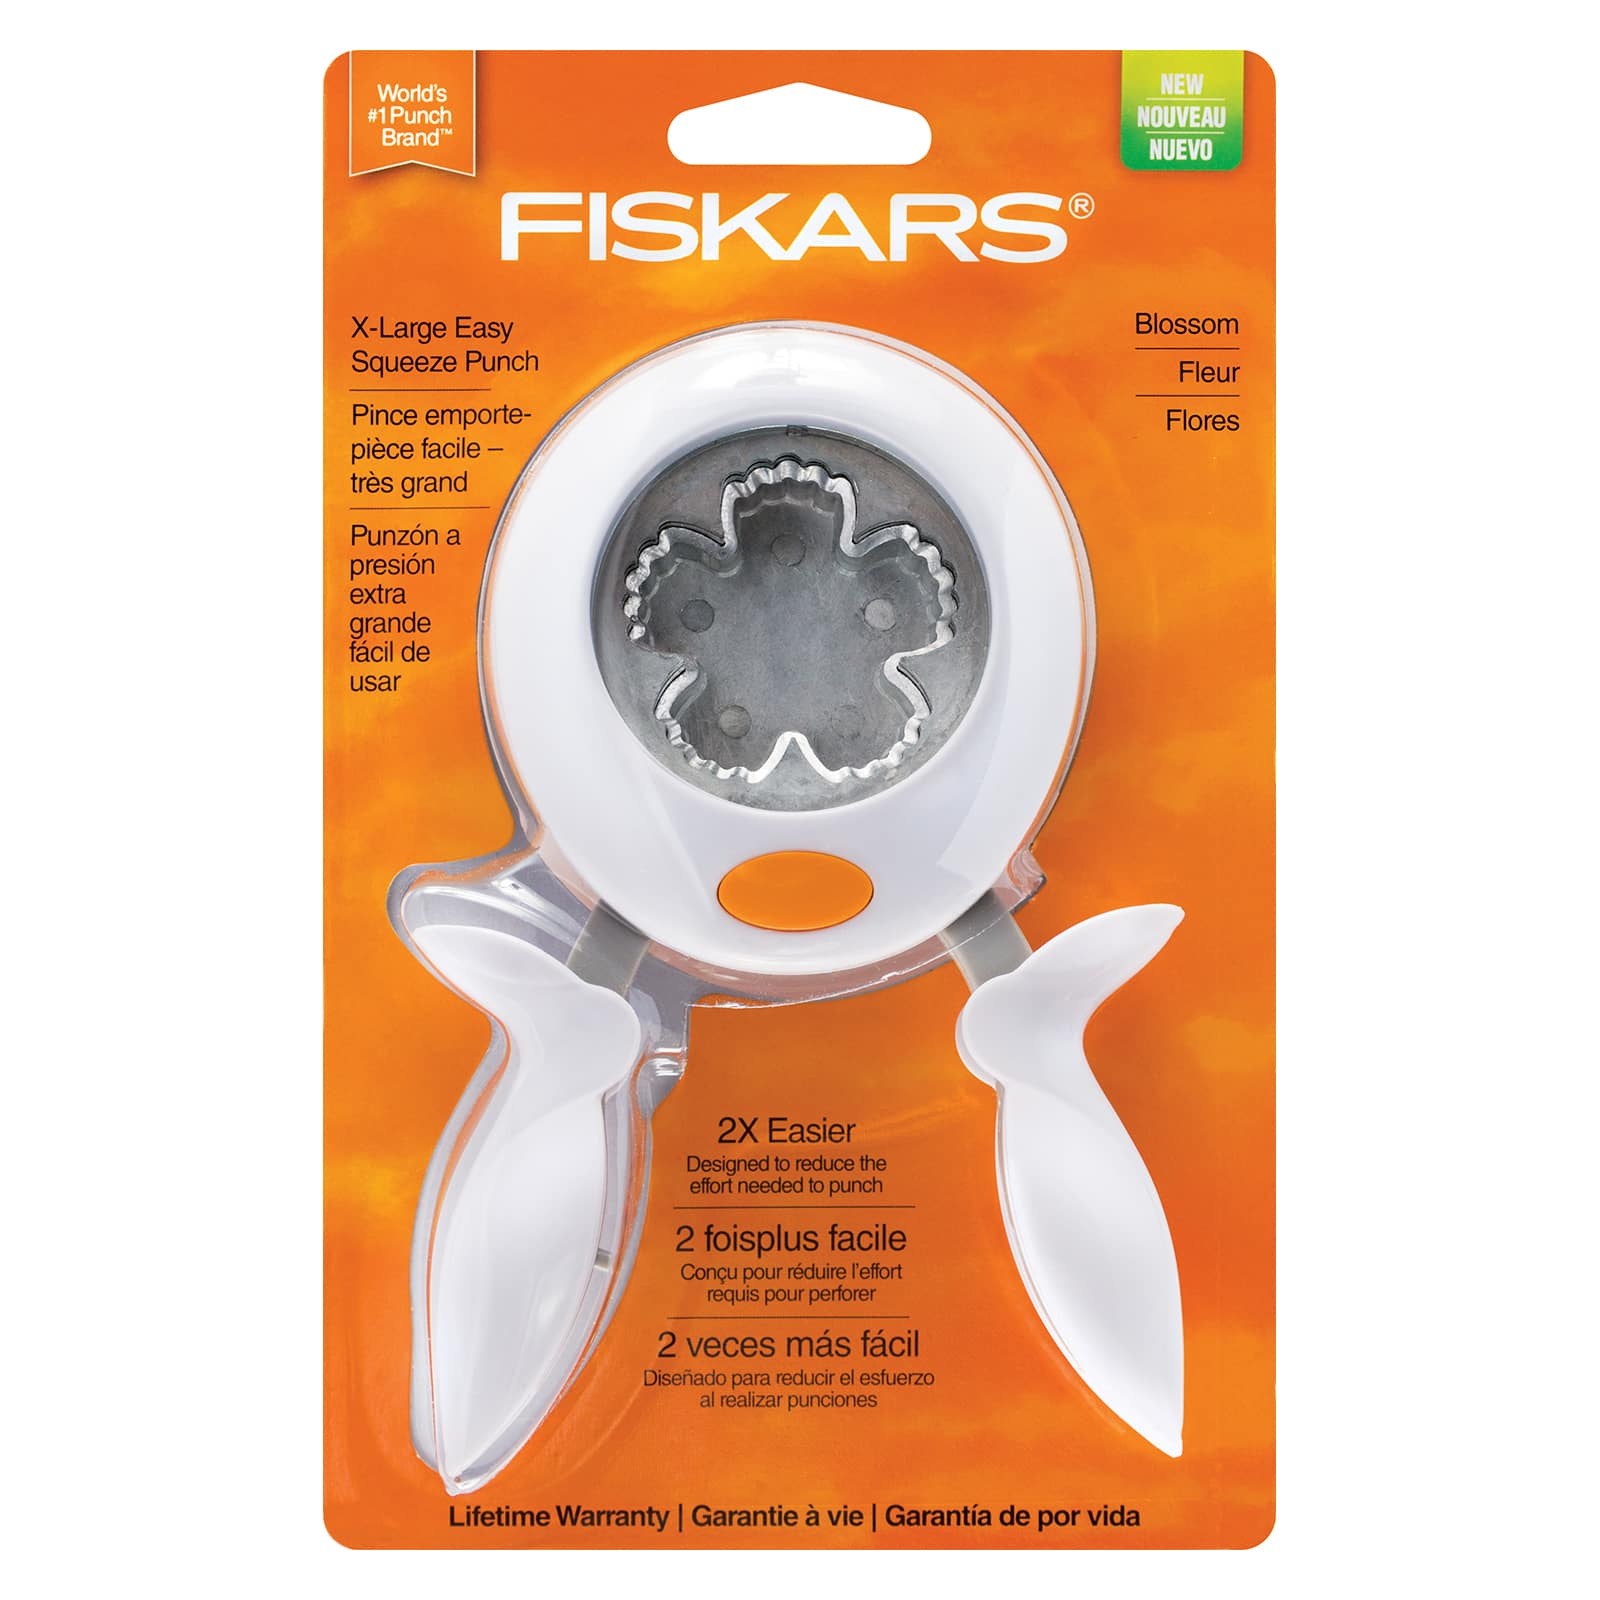 Extra-Large-Frozen Fiskars Squeeze Punch